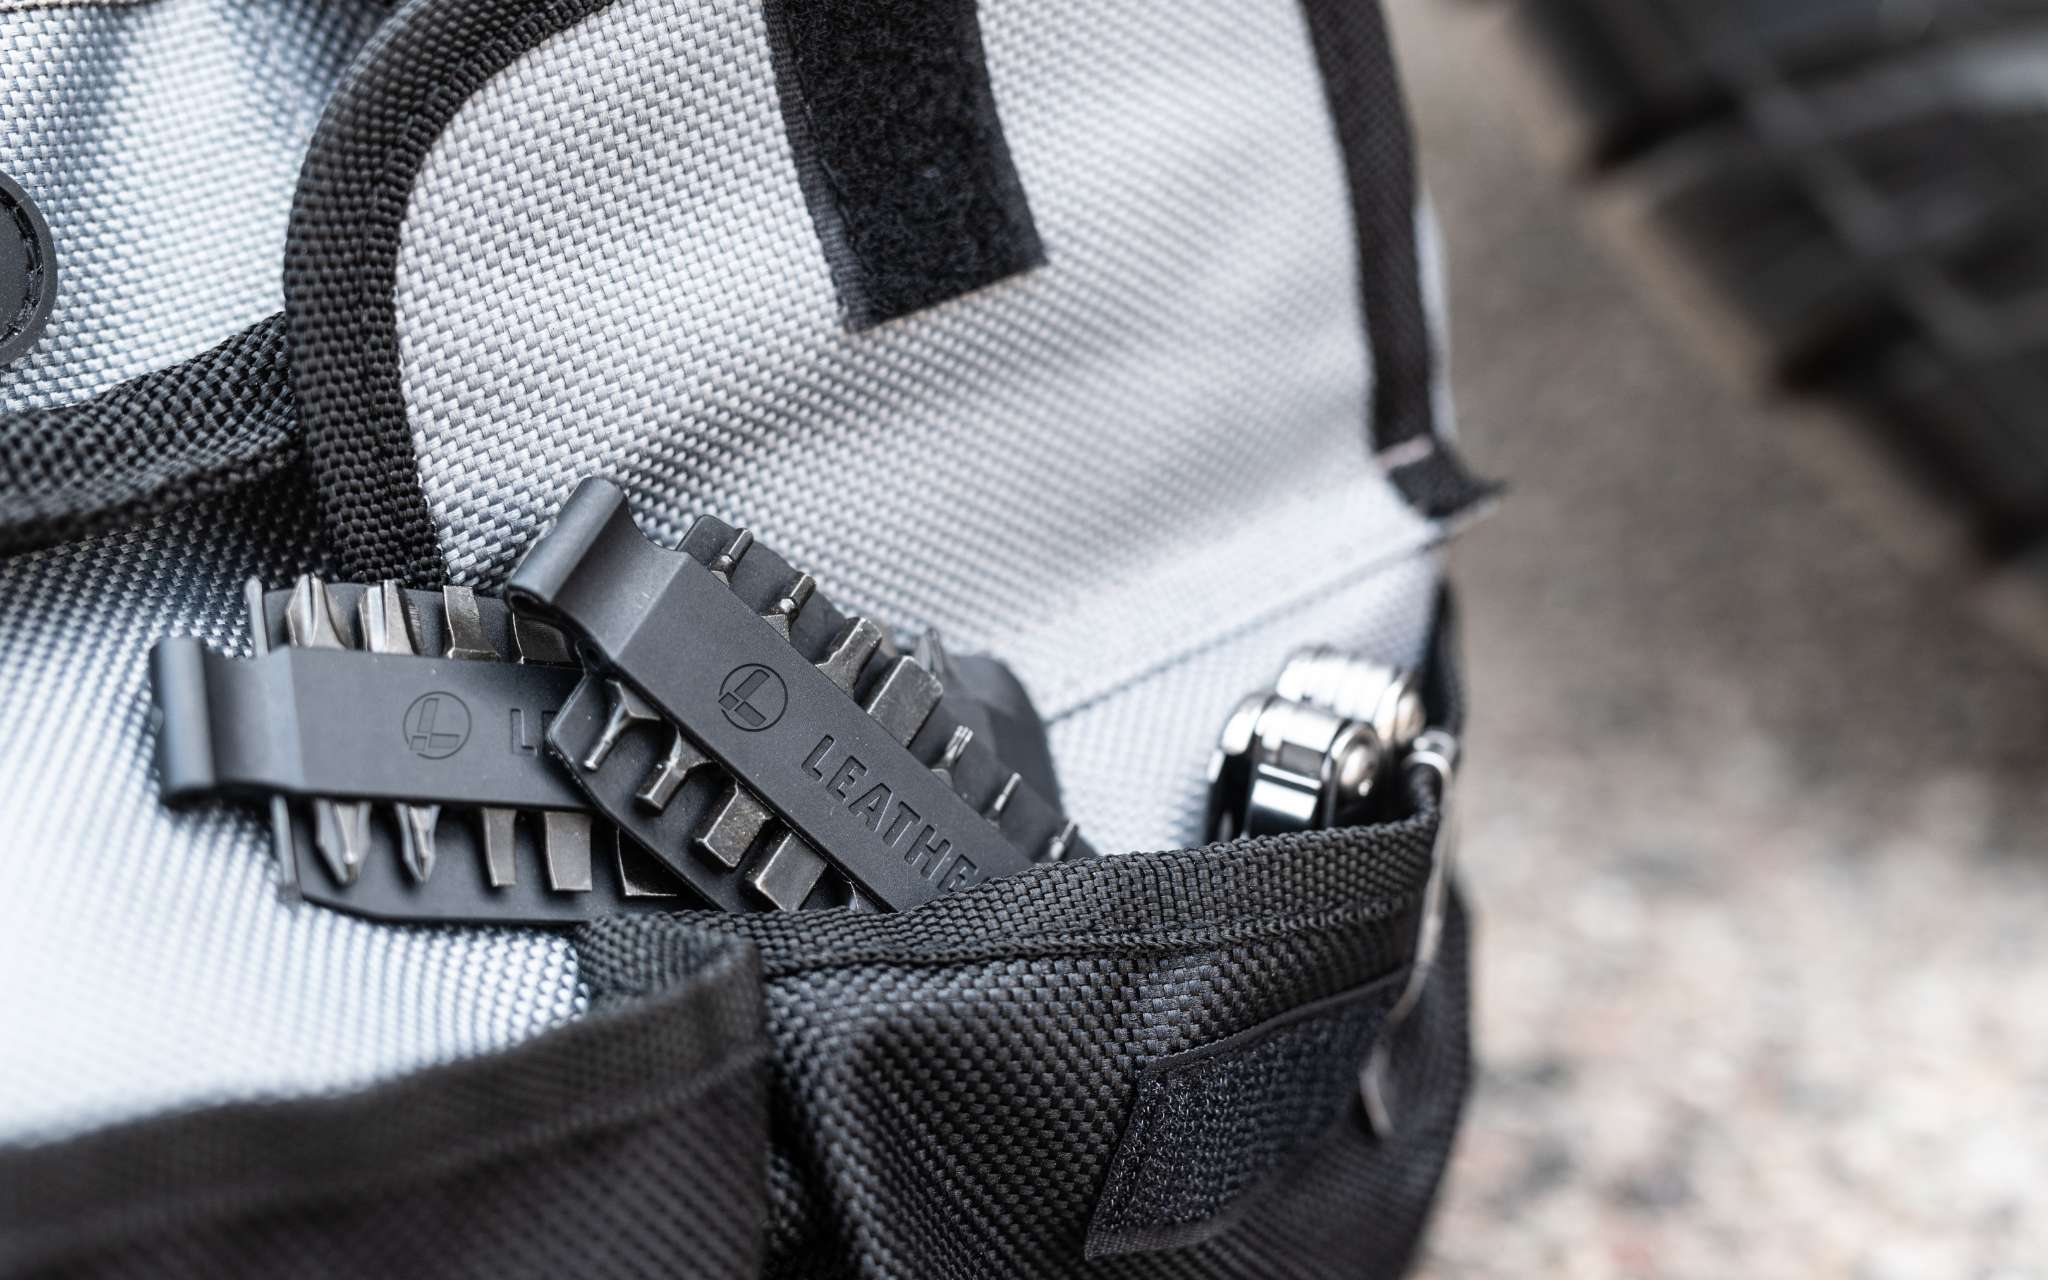 Bit kit and leatherman curl in backpack pocket